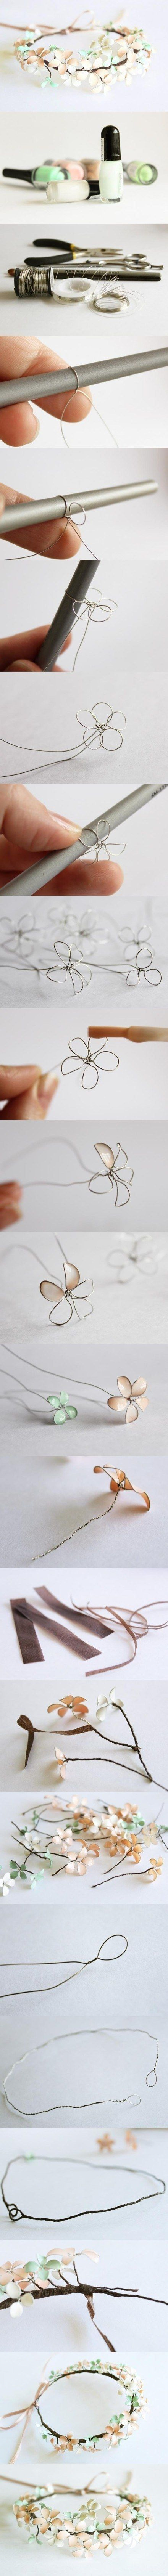 With thin wire, glue and nail polish to do some pretty flowers.    | DIY & Crafts